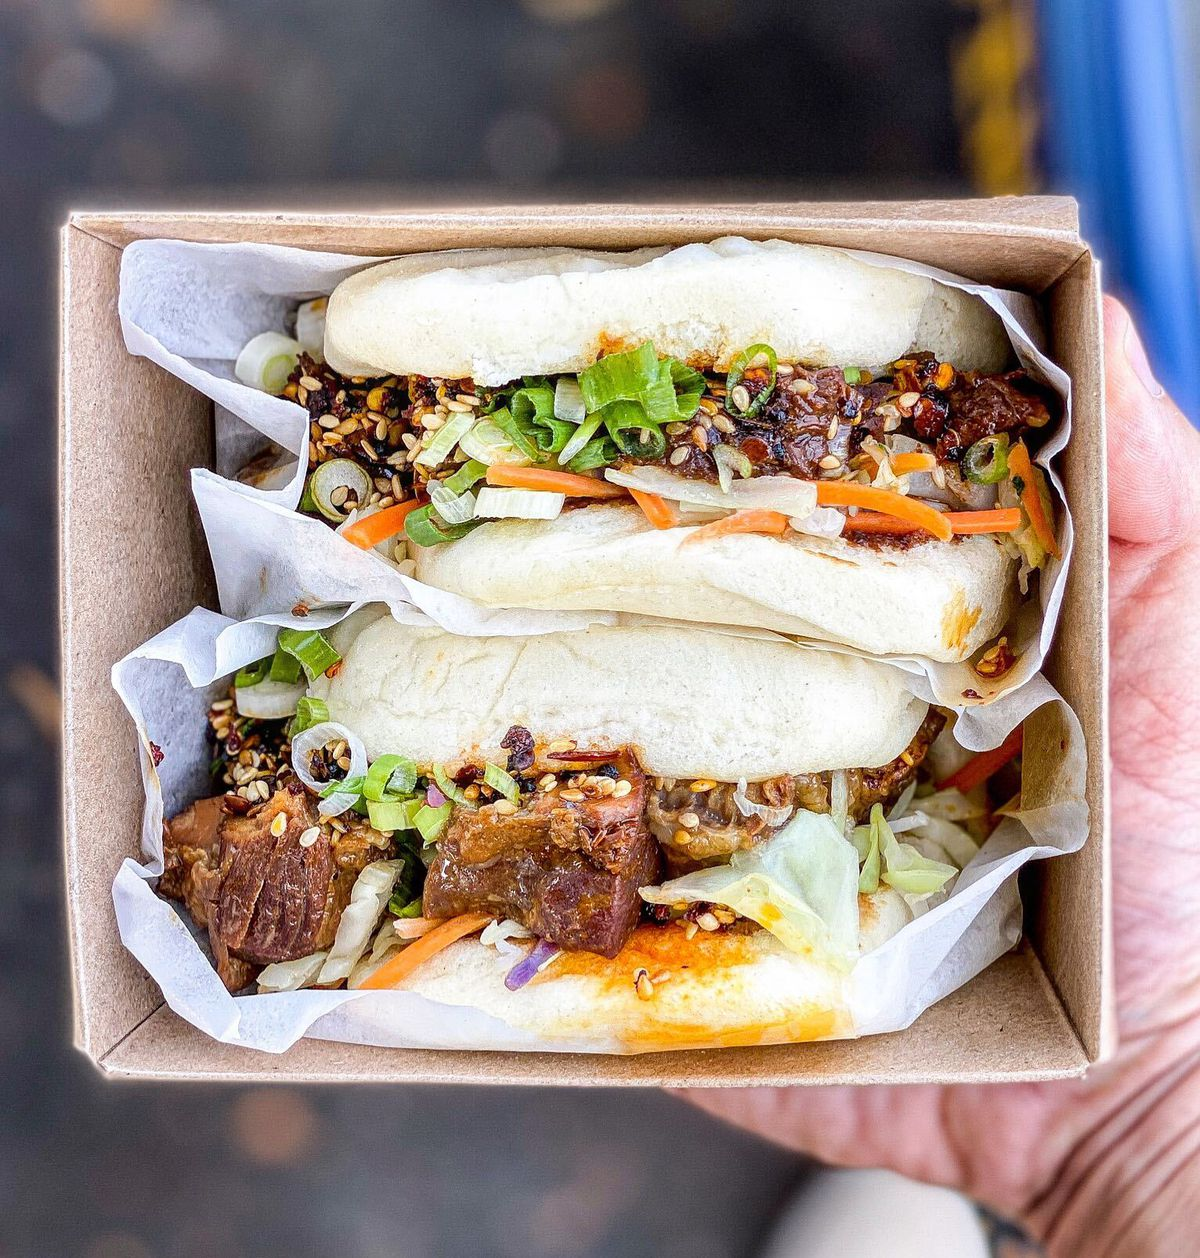 Chinese buns filled with beef and pork.